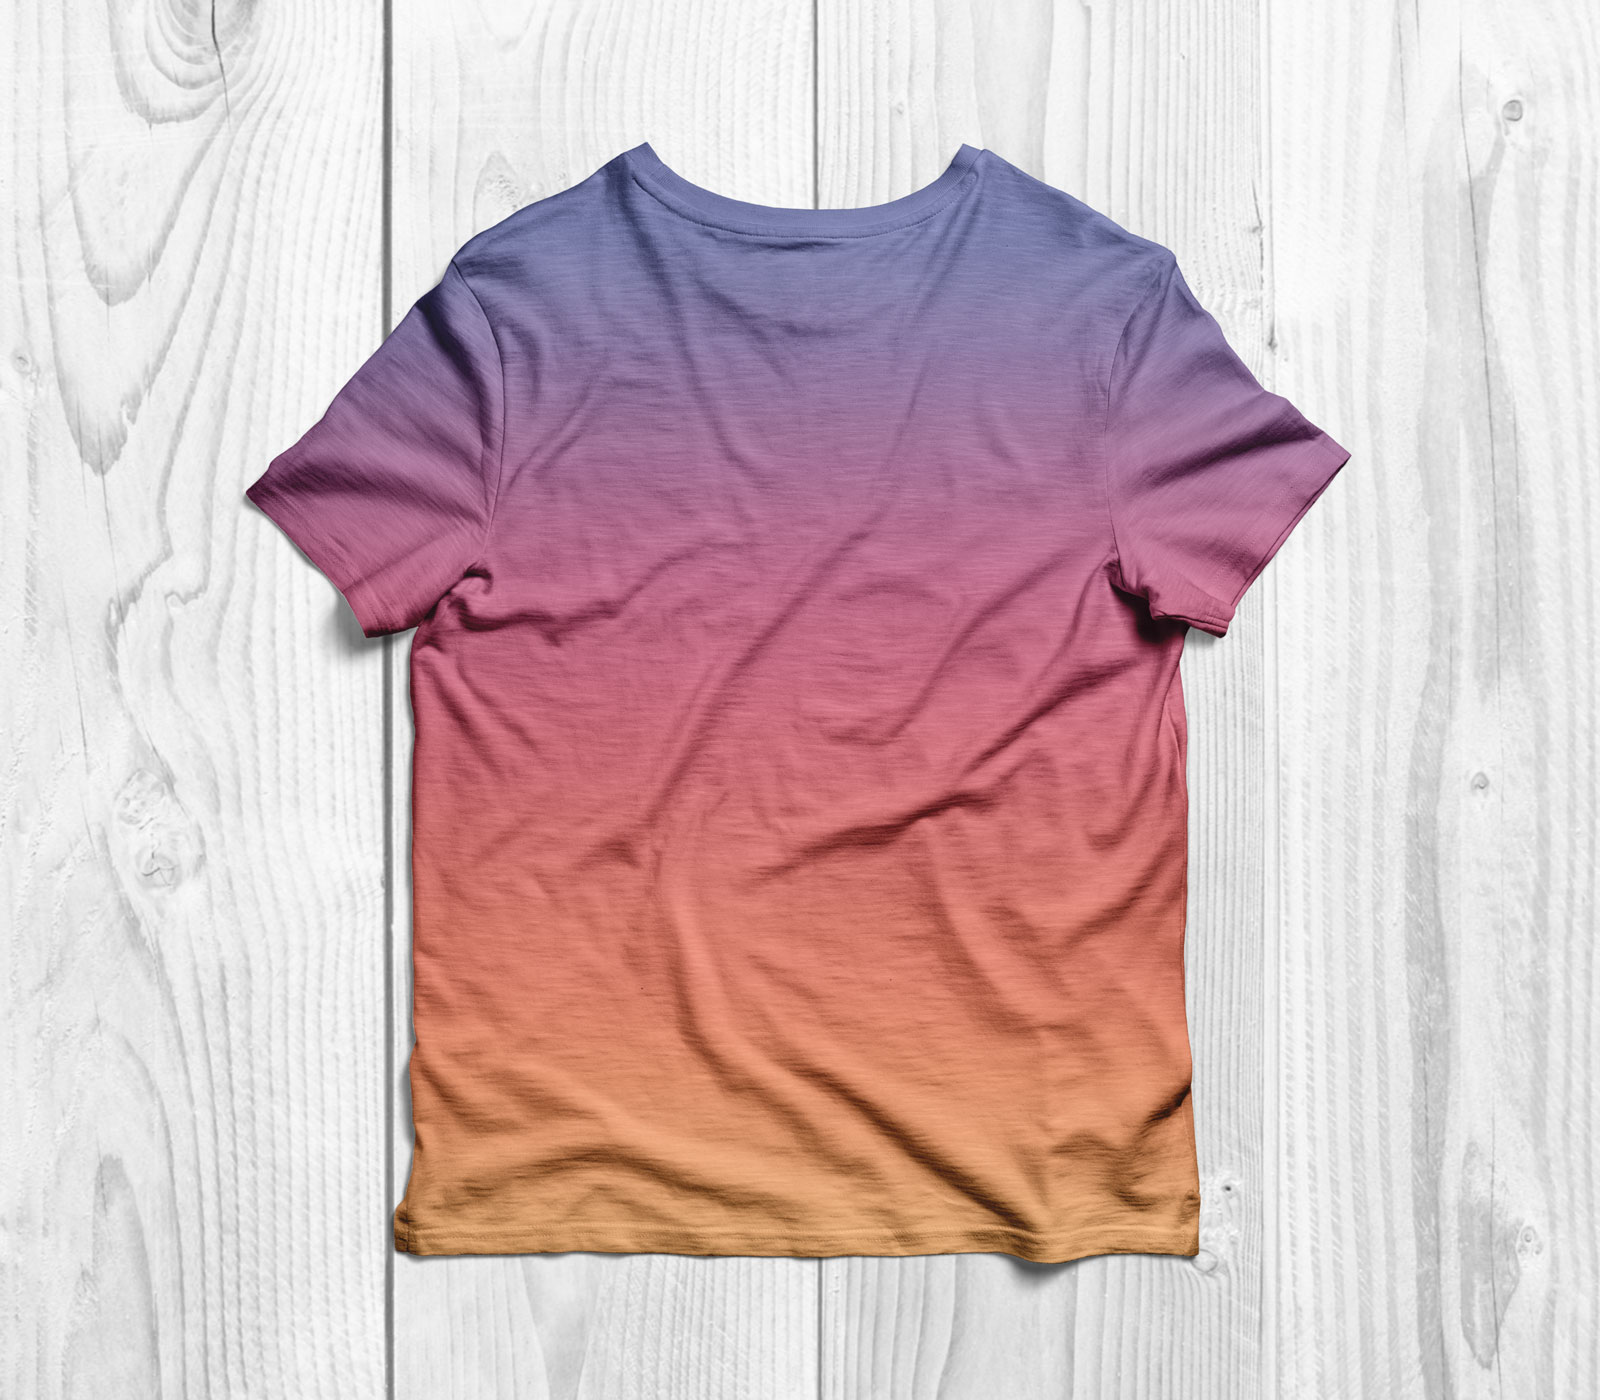 Free-Half-Sleeves-Pocket-T-Shirt-Mockup-PSD-backside